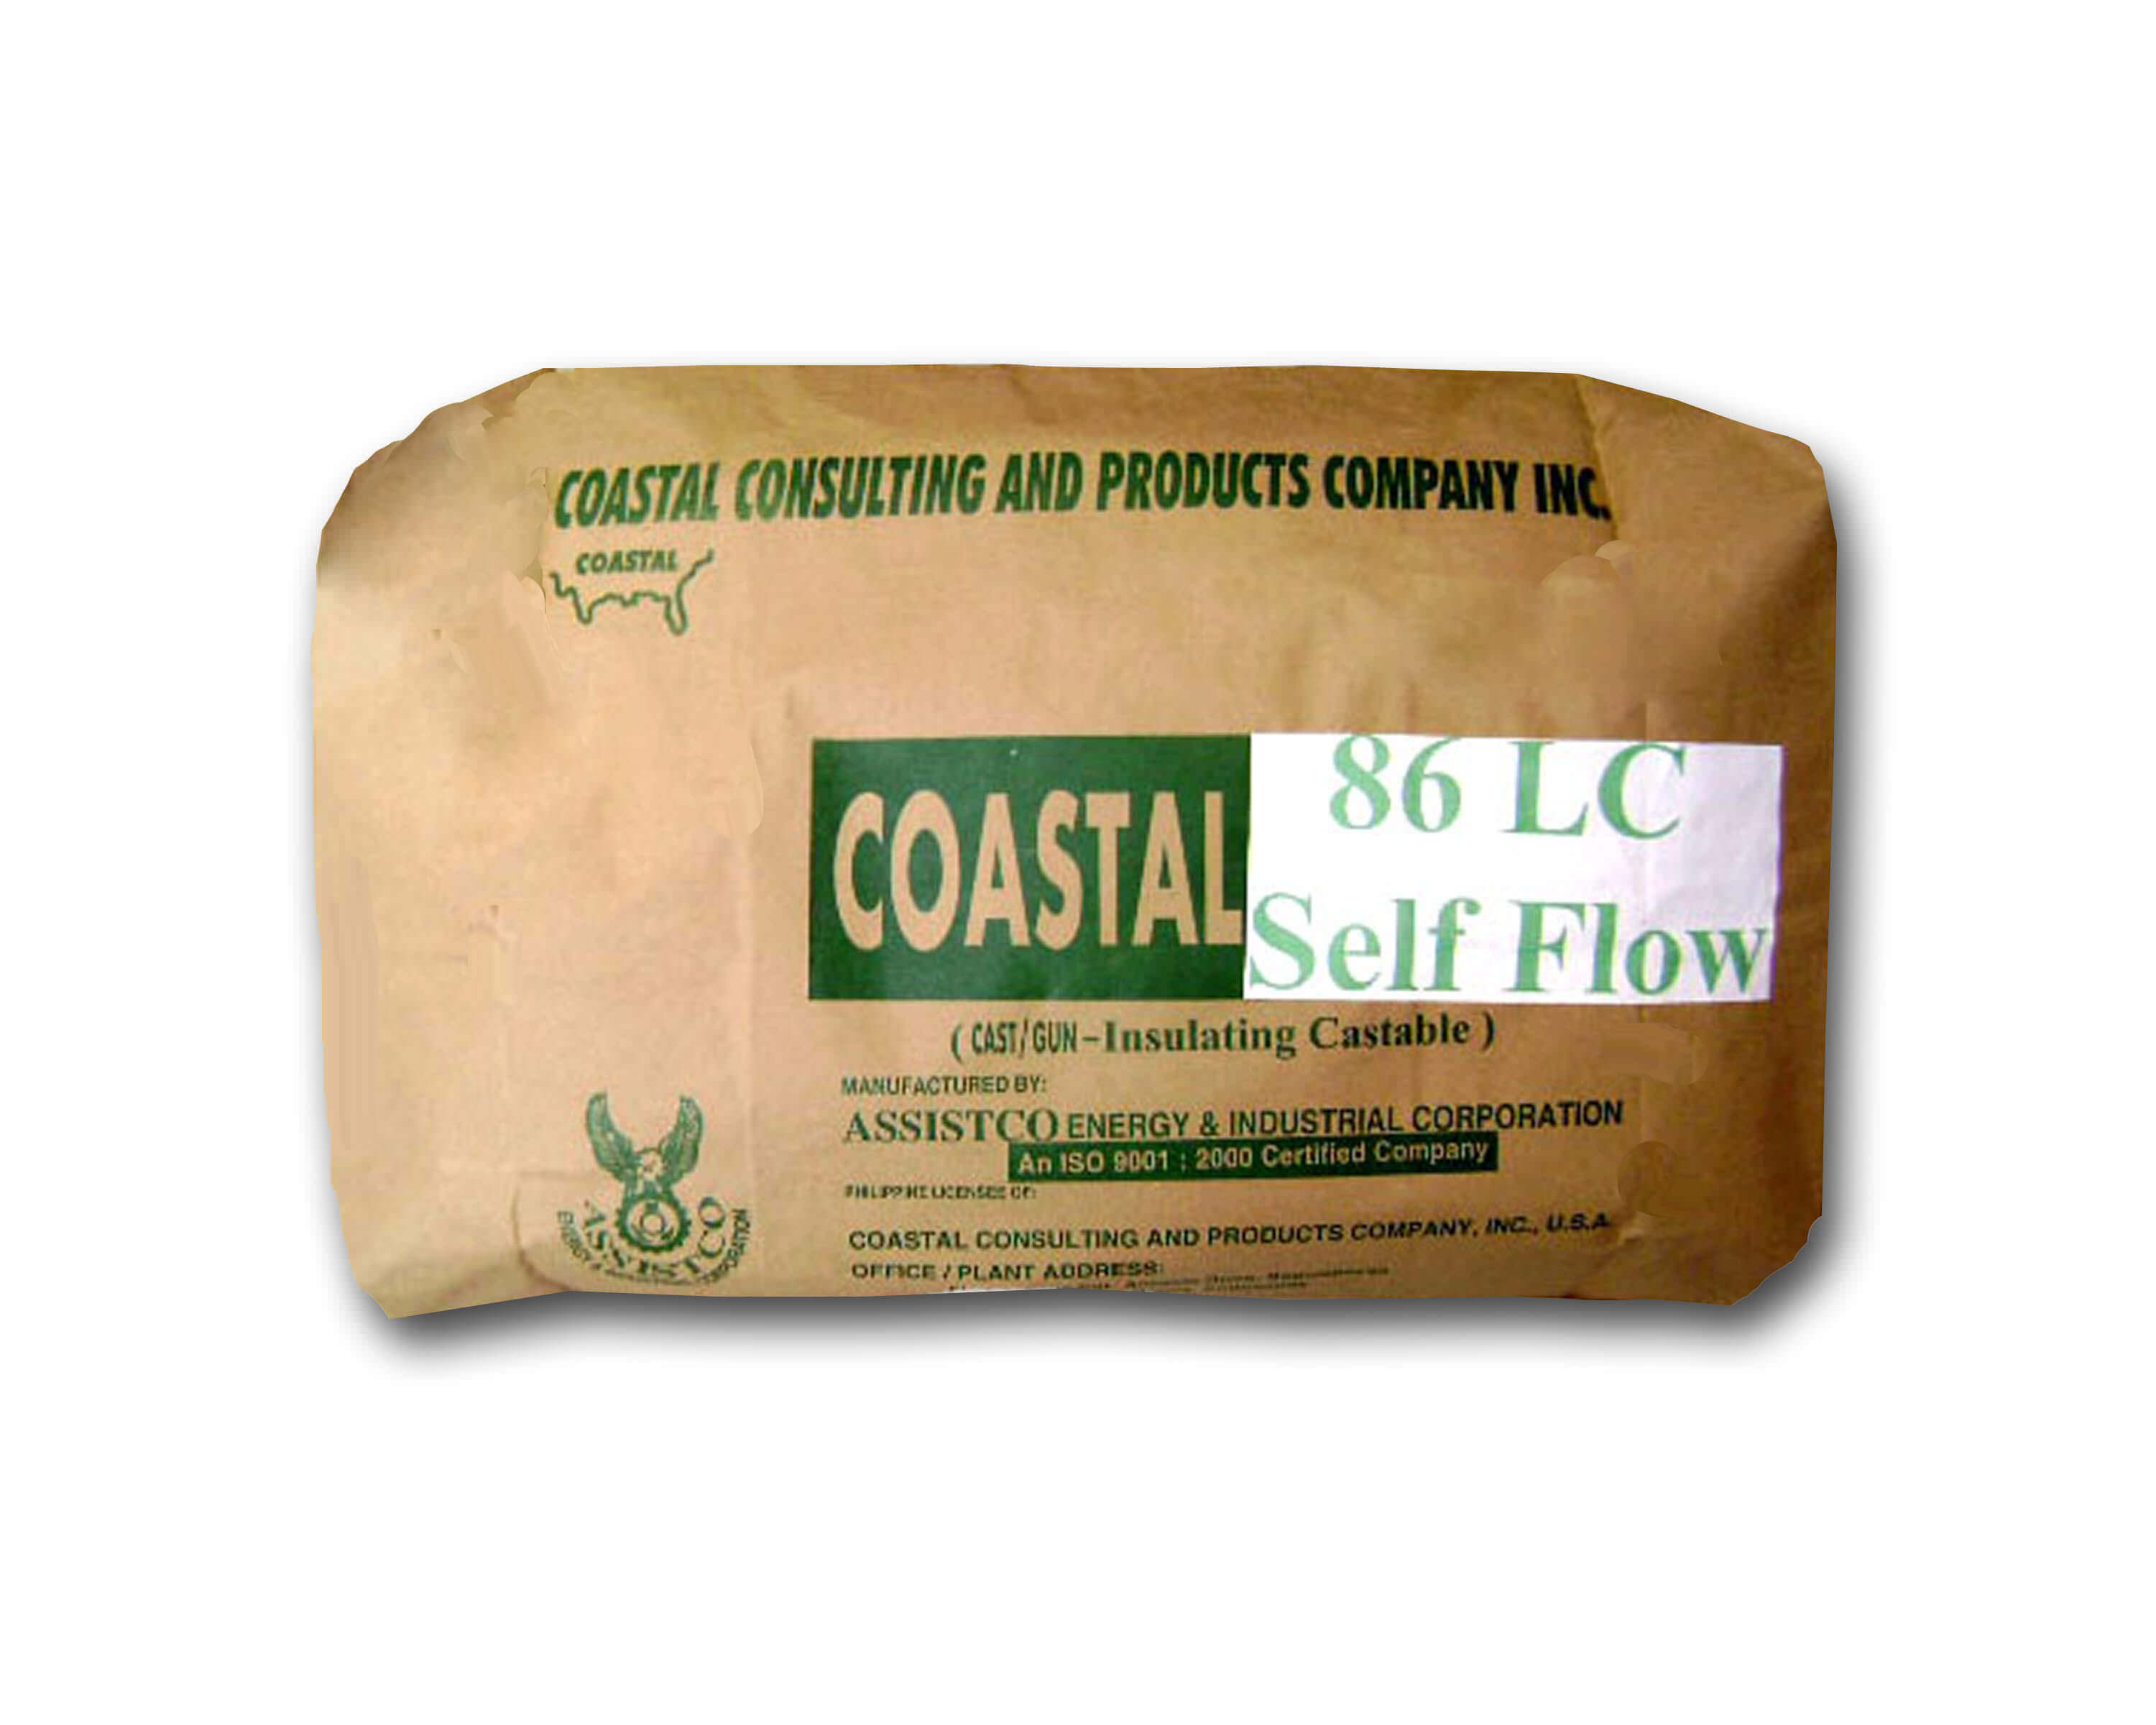 Coastal Self-Flow Cast 86 LC